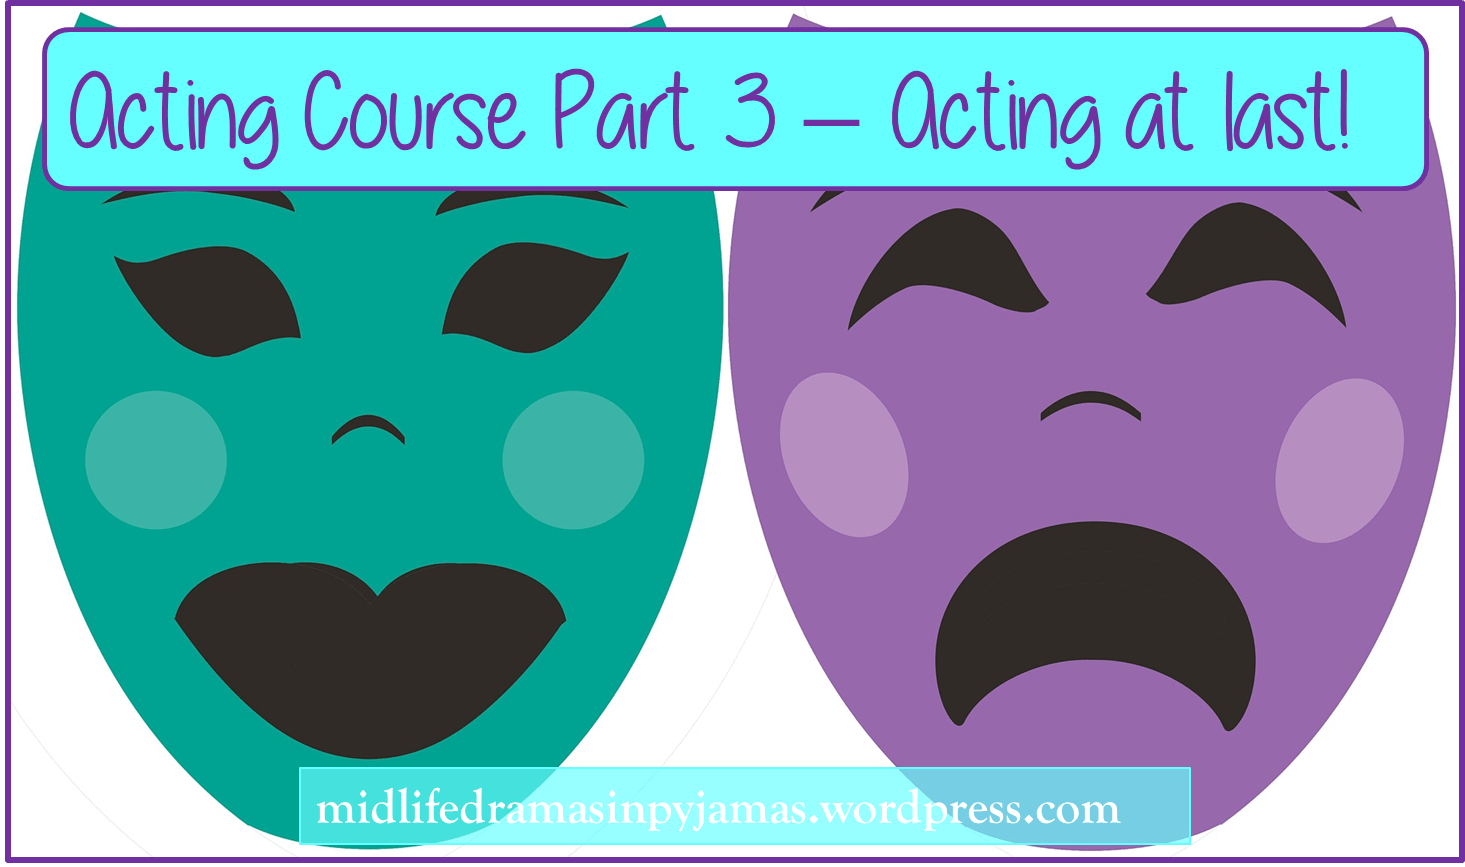 A funny blog post about the third session on an acting course, from Midlife Dramas in Pyjamas